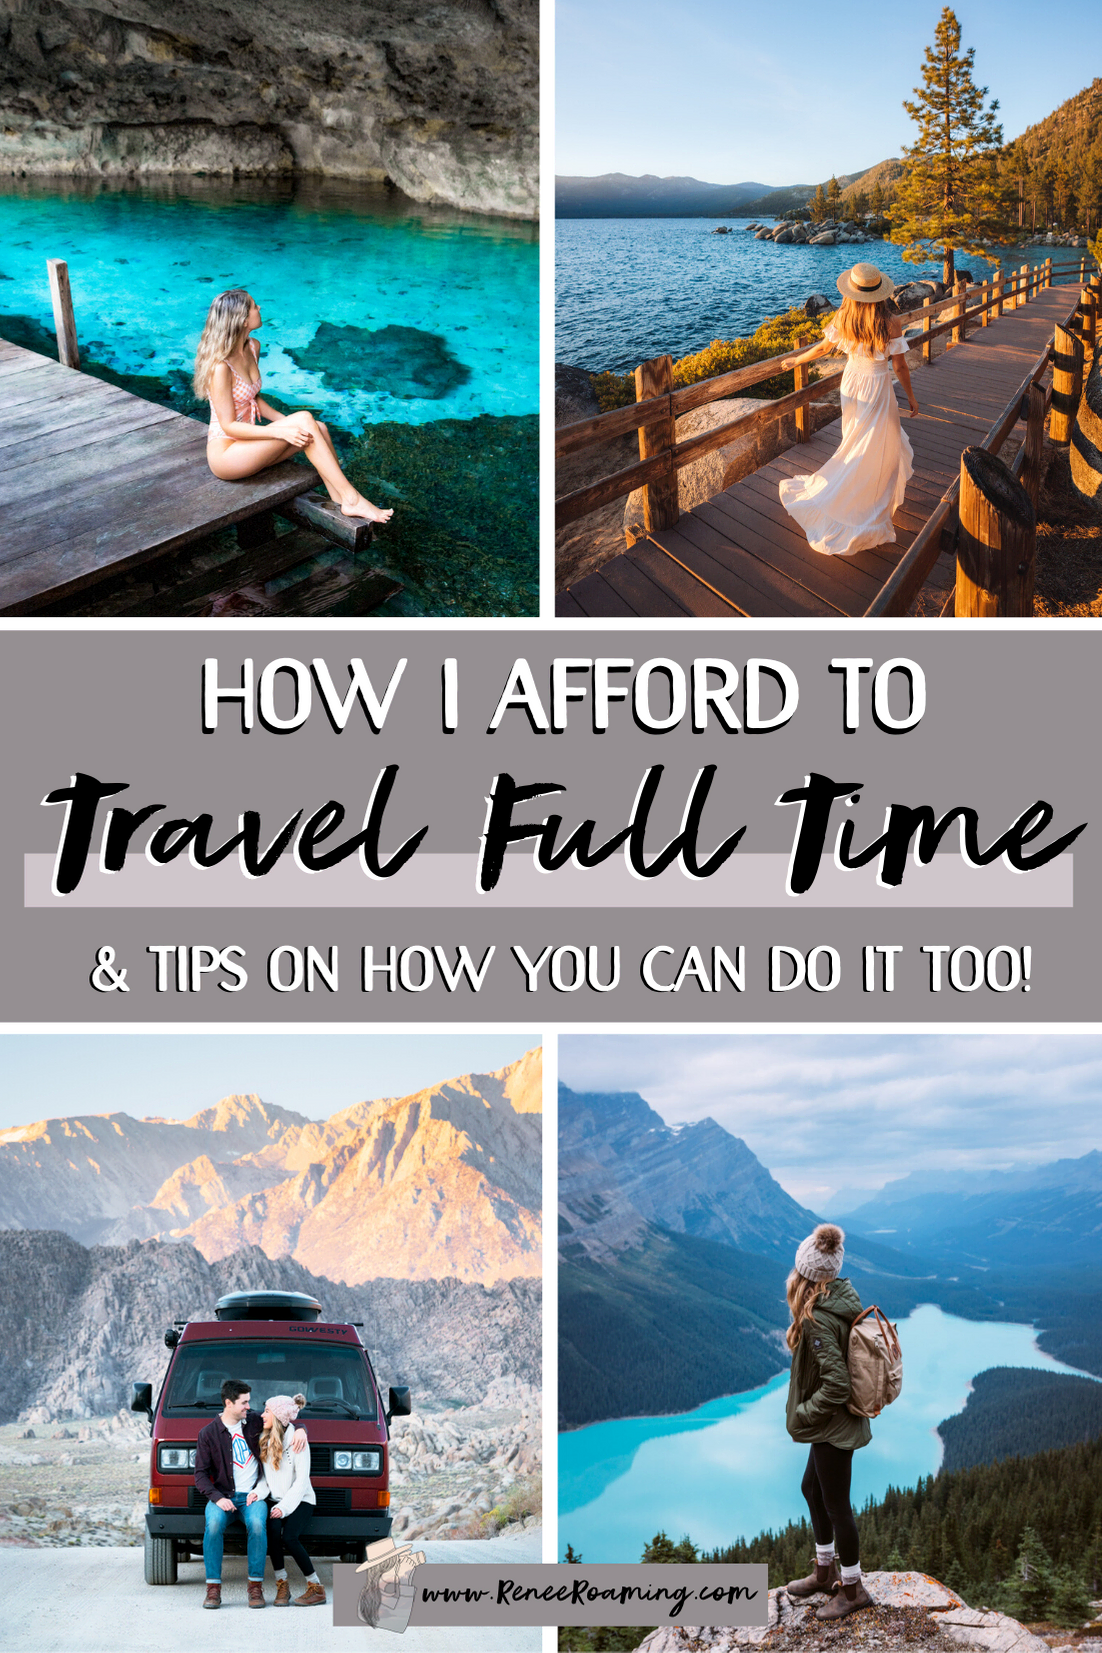 How To Travel Full Time - Must Know Tips for Affording to Travel